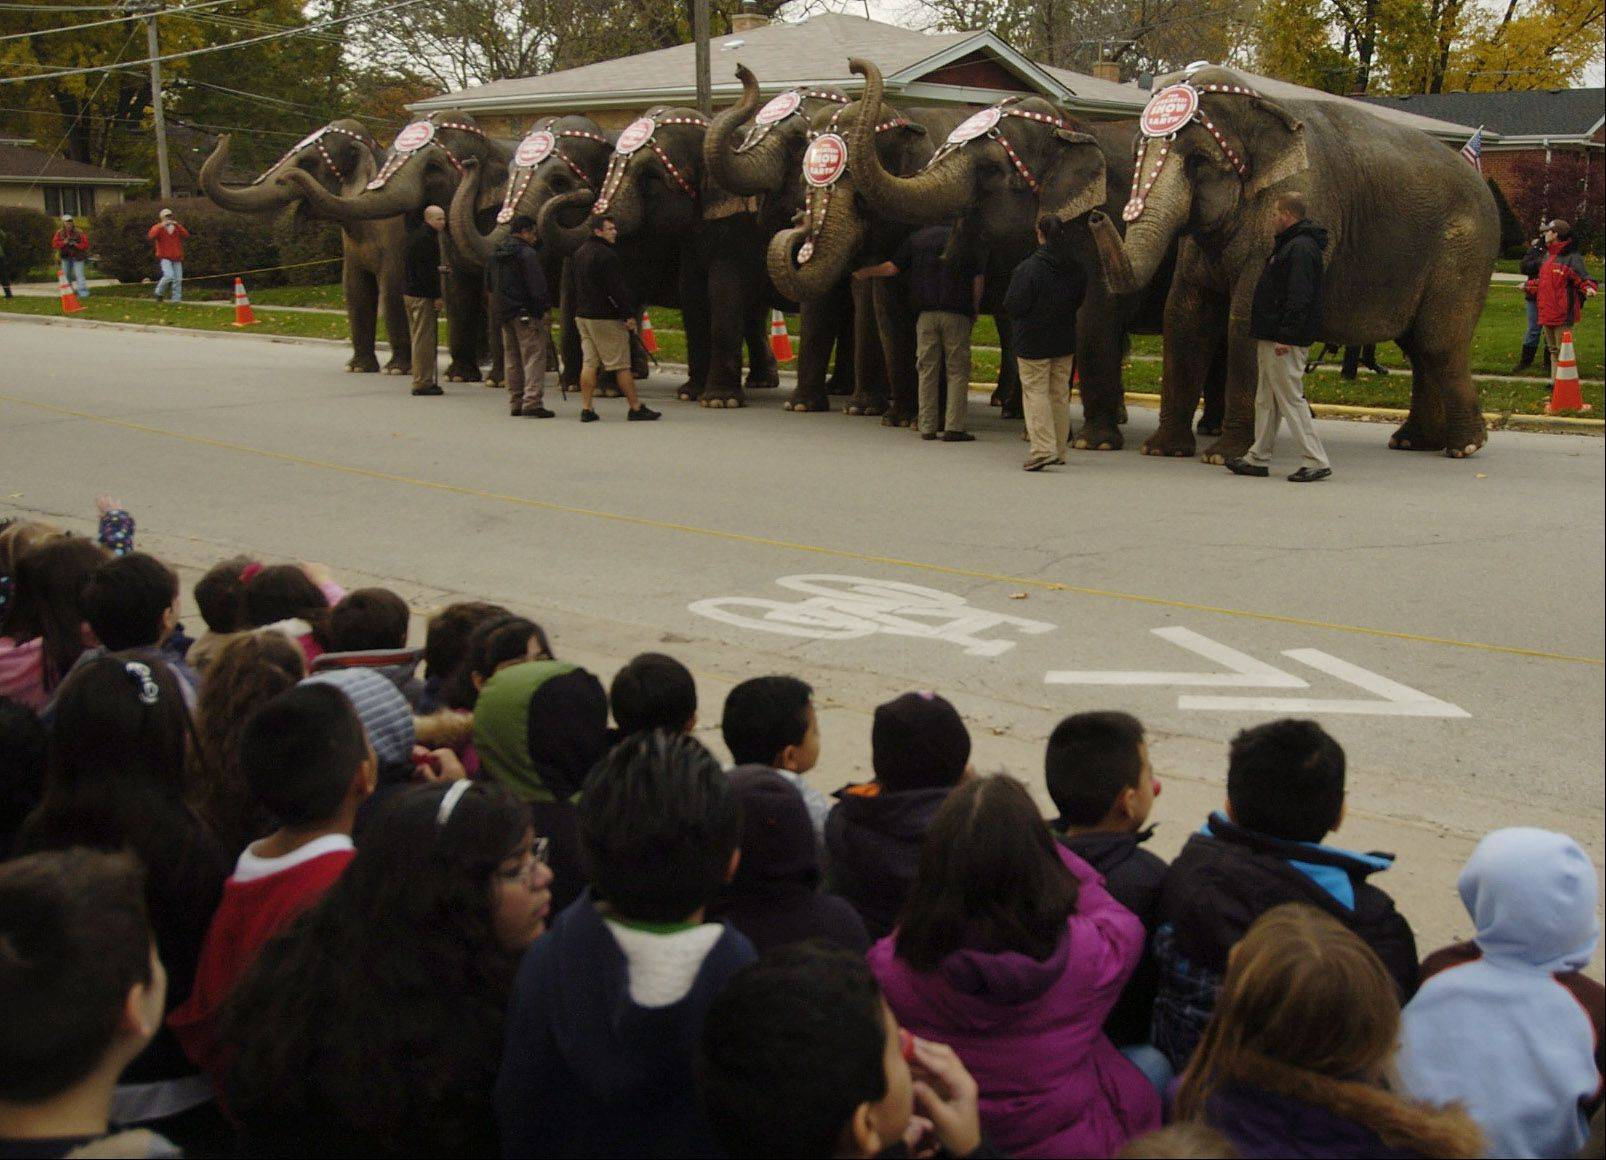 Ringling Bros. elephants arrive at Orchard Place Elementary School in Des Plaines.